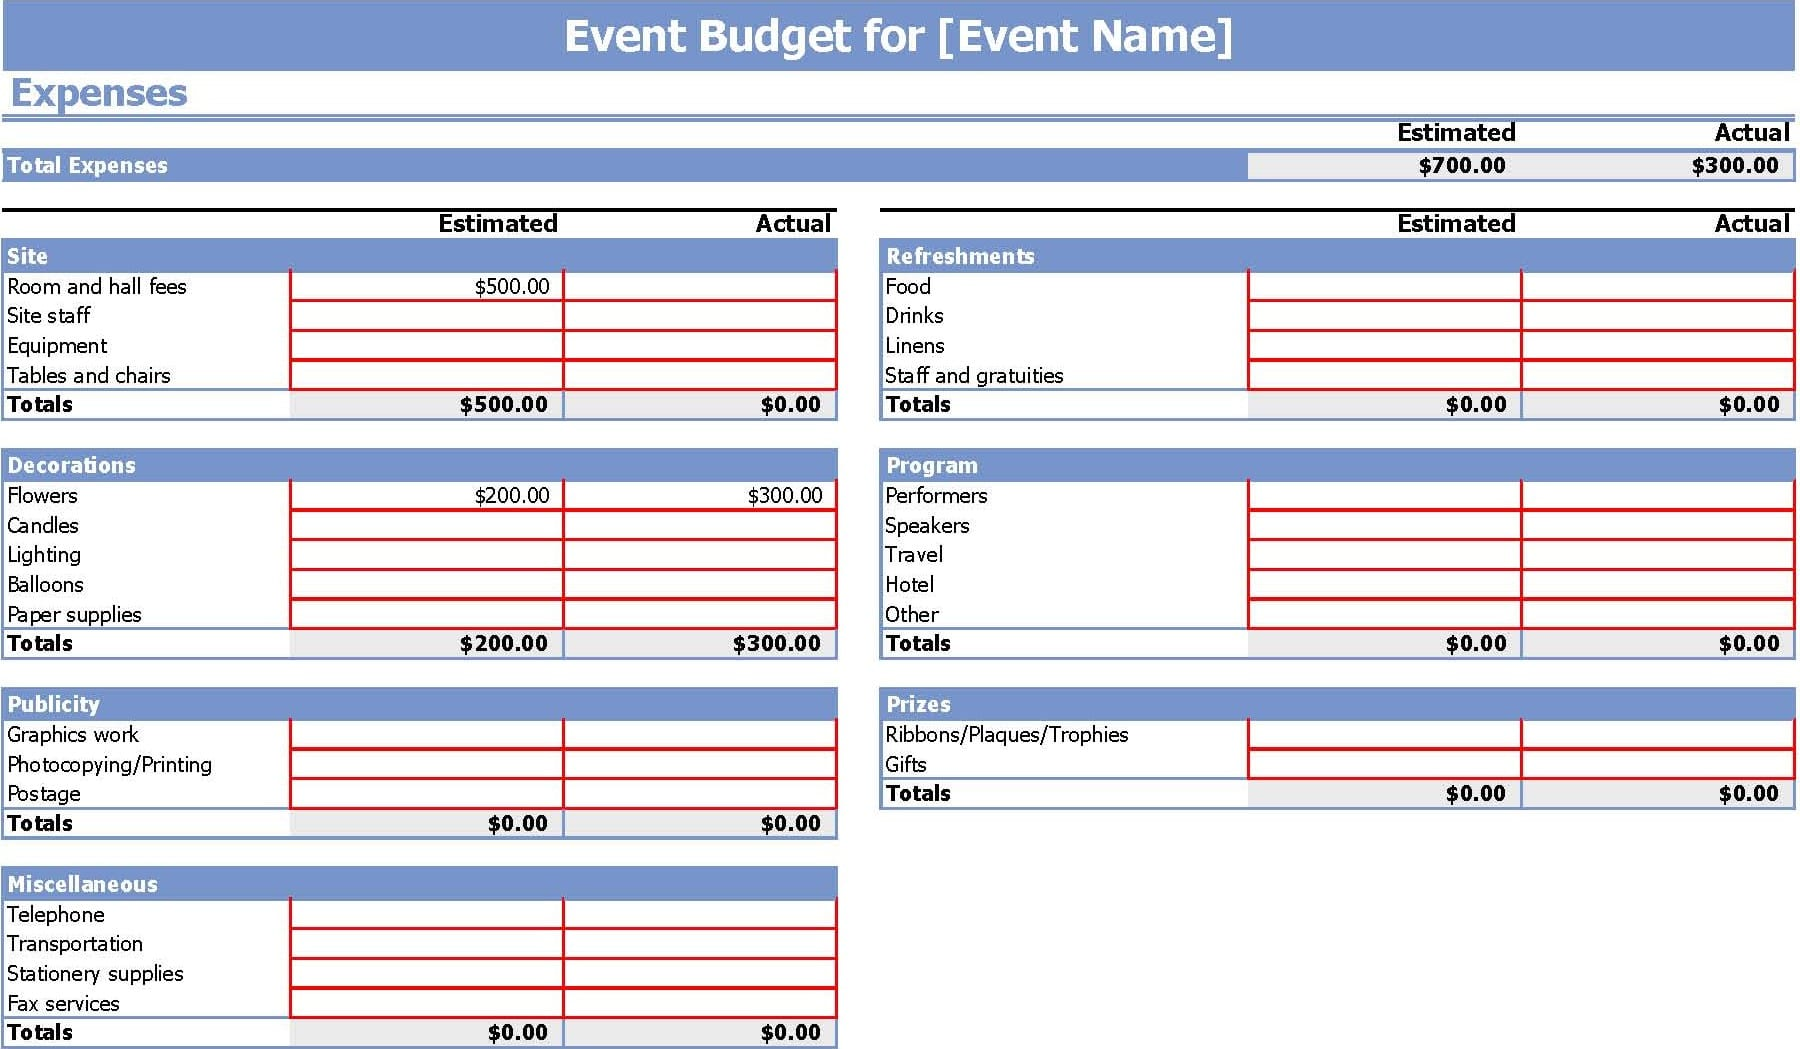 Free Budget Template Excel Monthly Budget Template Basic Budget Spreadsheet Basic Budget Spreadsheet Template Household Budget Template Excel Simple Budget Template Printable Monthly Budget Template